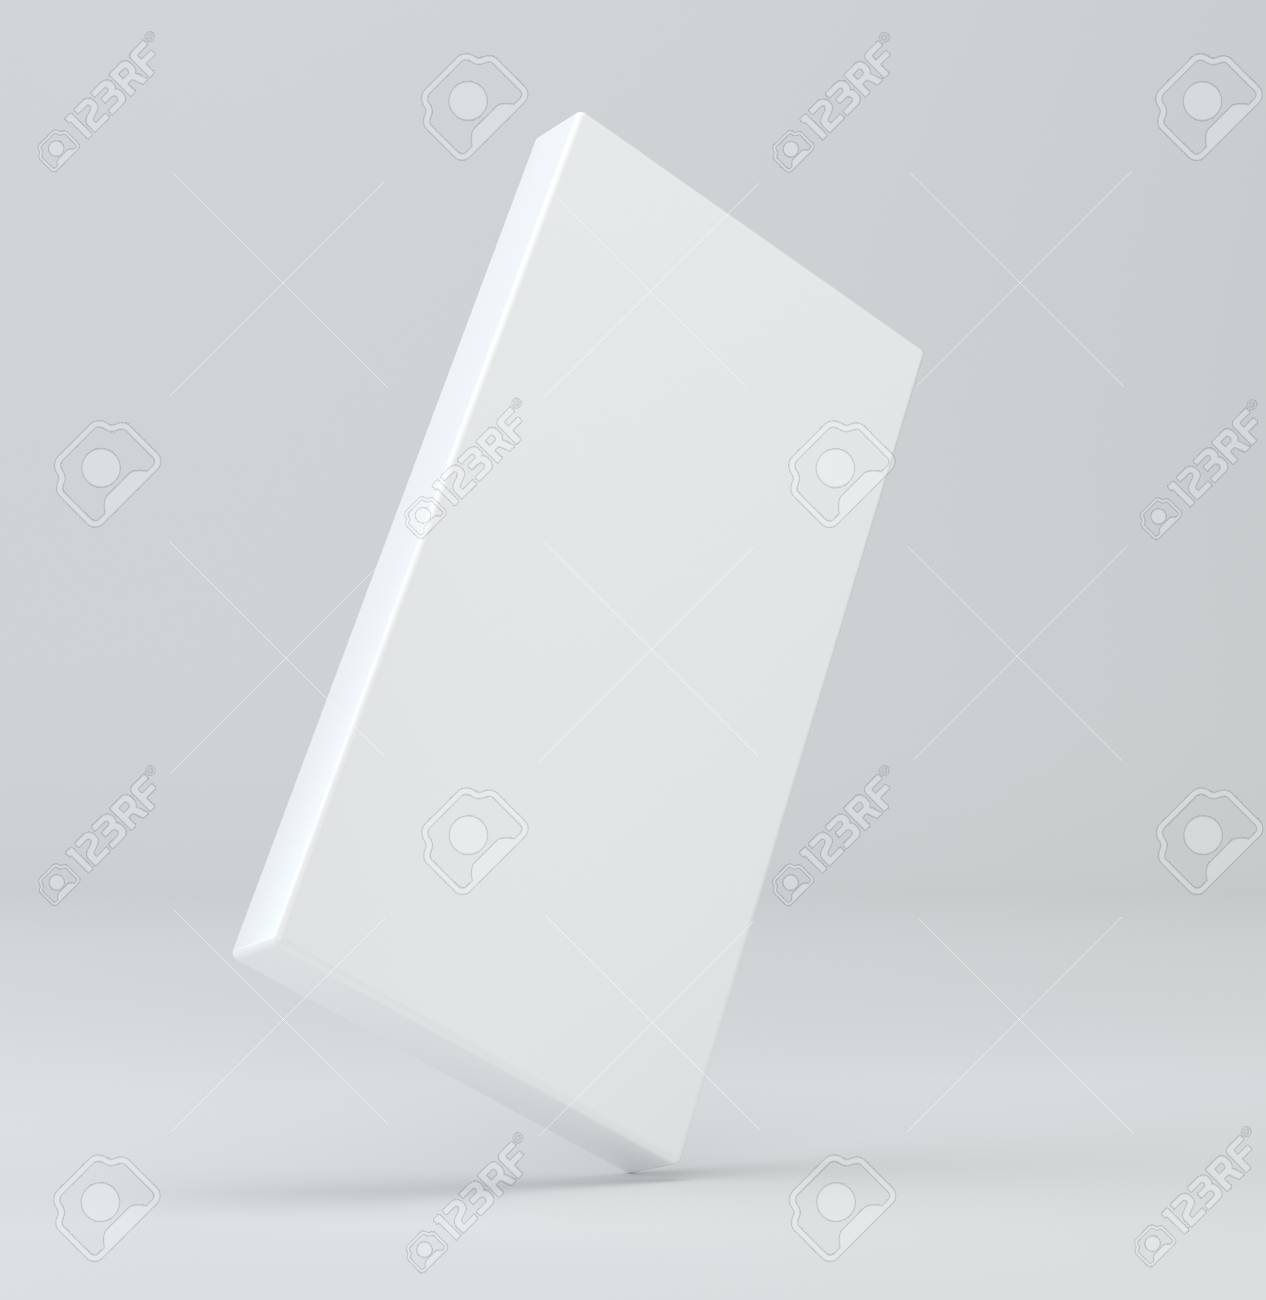 White package blank box from top front side angle. 3D illustration on studio light background - 94988281